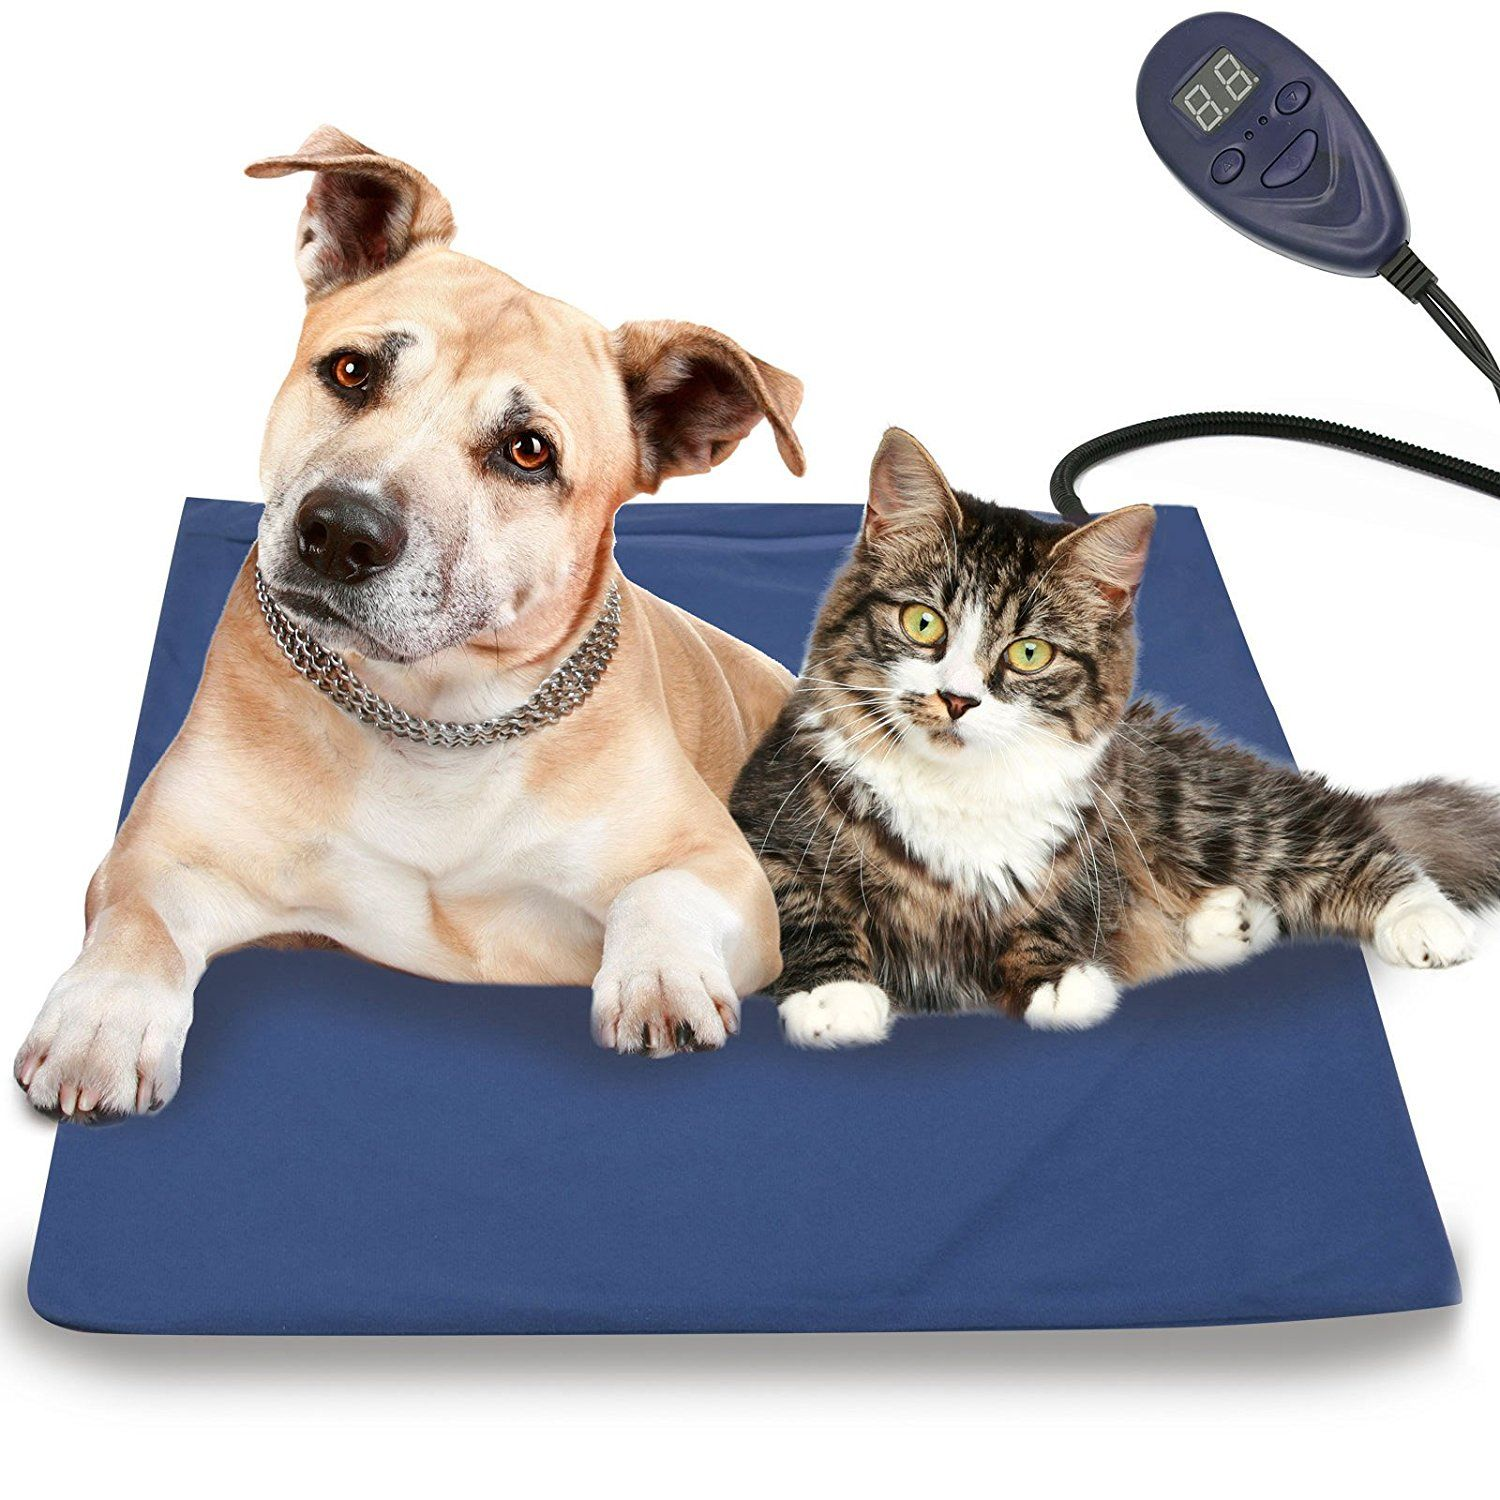 cat Heating Mat Waterproof Electric Pad Chew Resistance